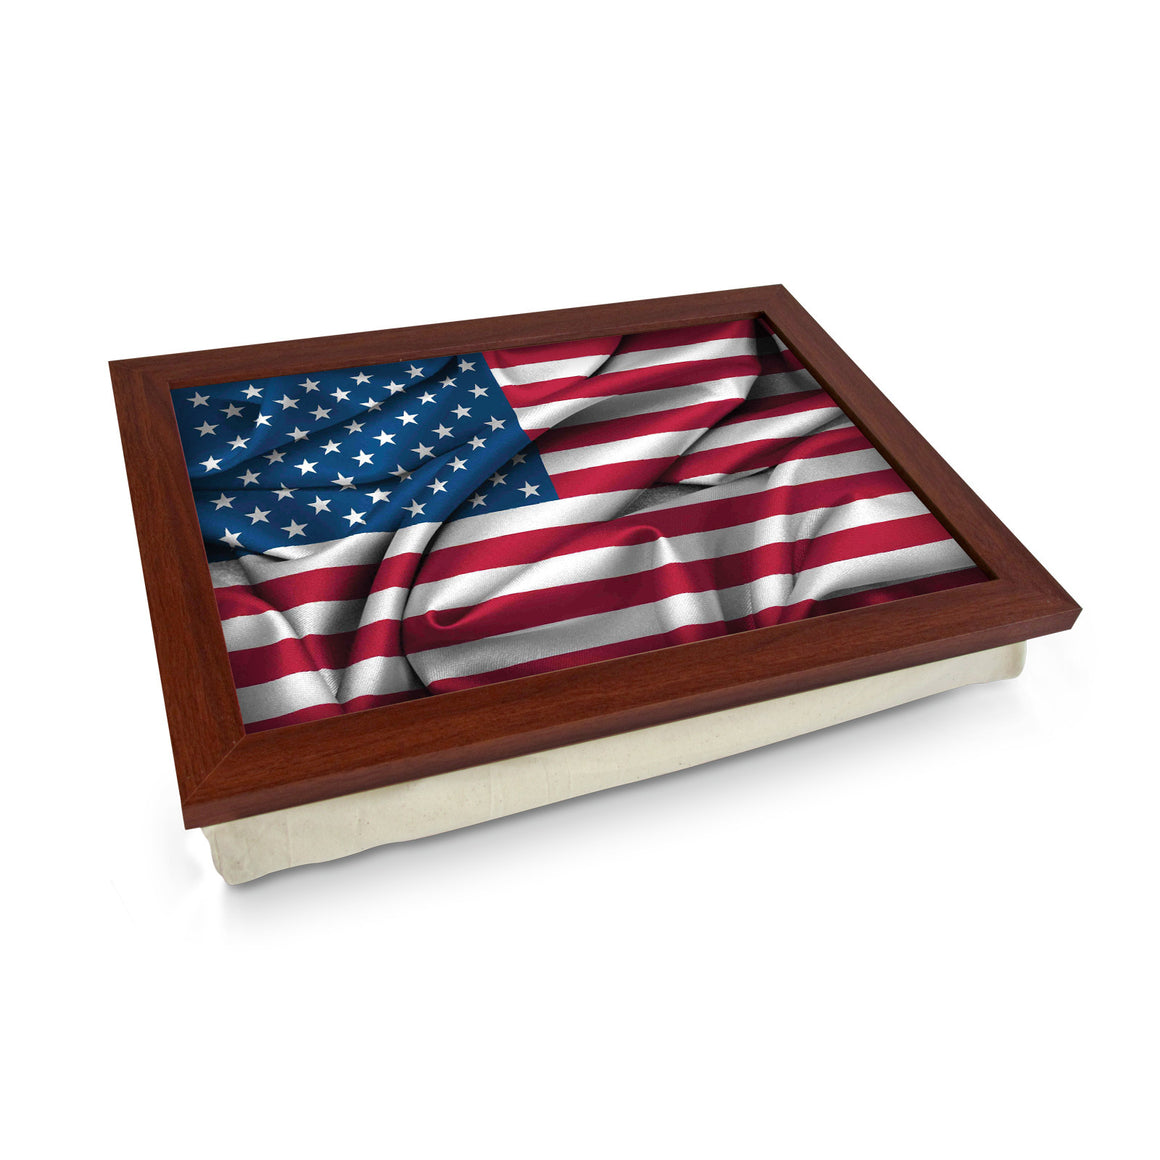 USA Flag Material Lap Tray - L0499